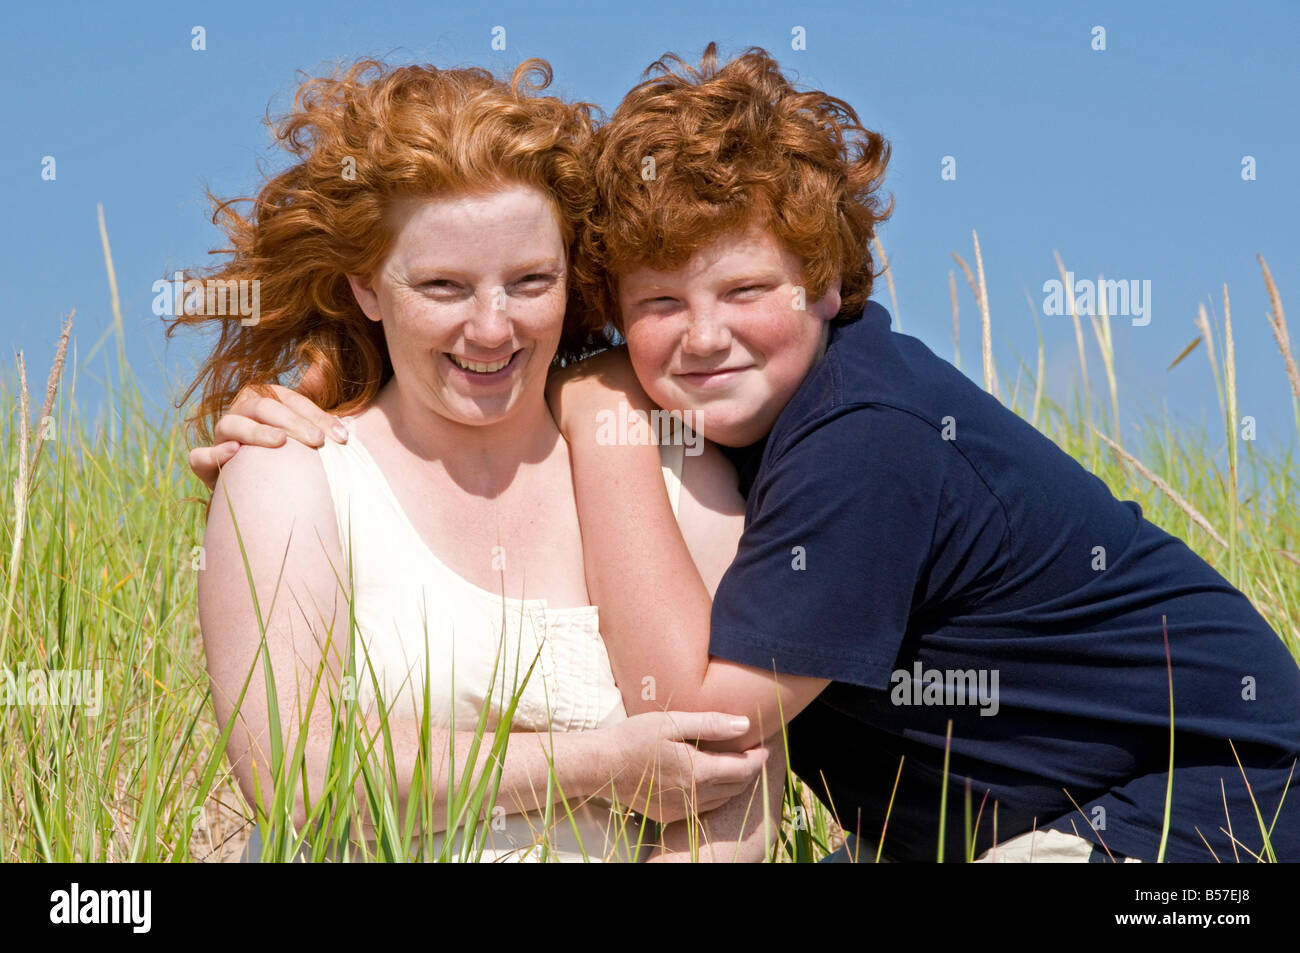 Mother and teenage son - Stock Image